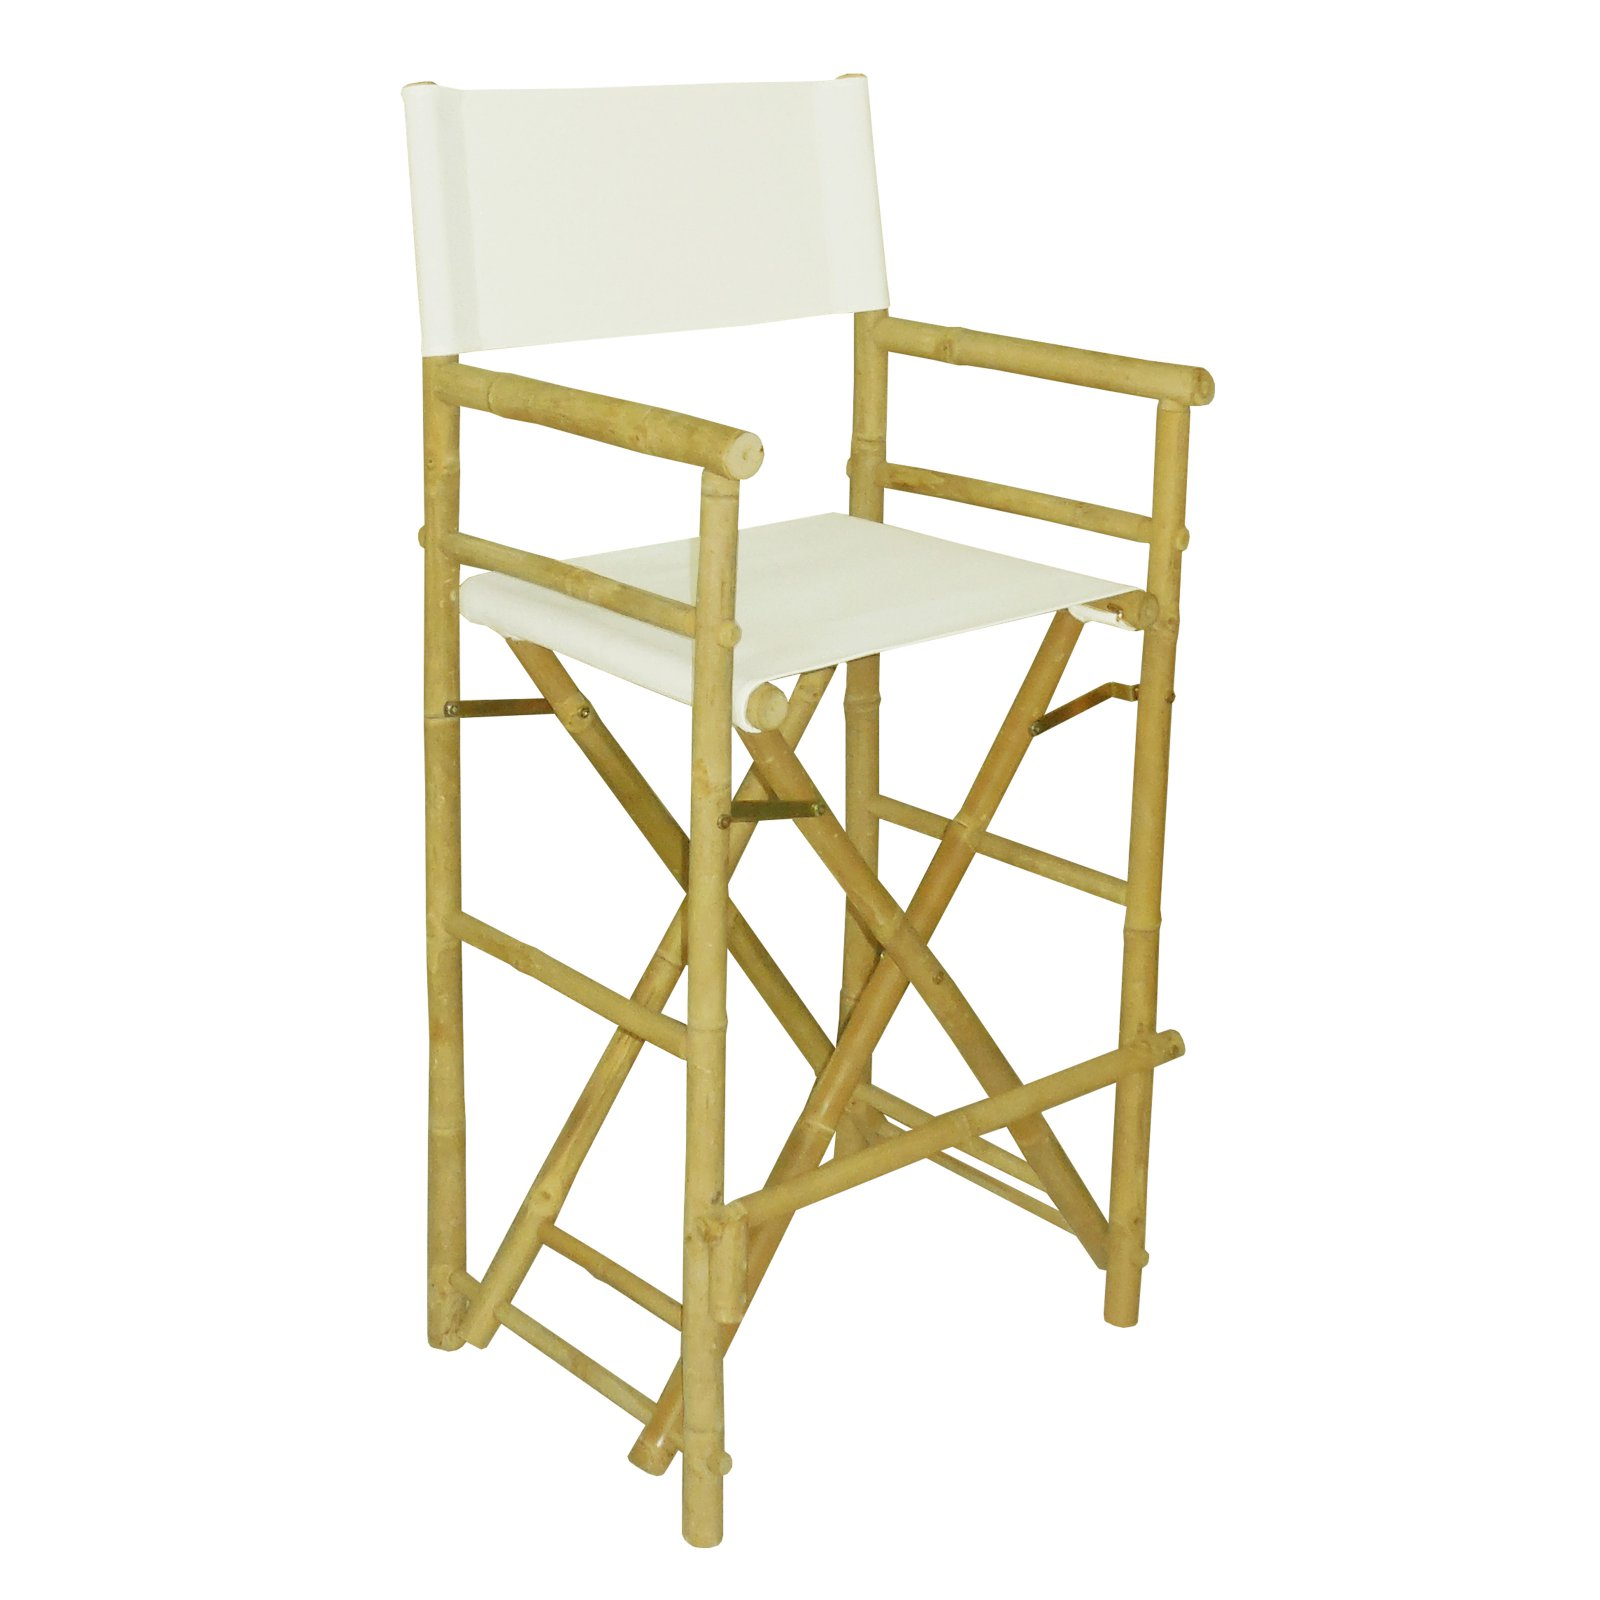 Statra Bamboo Indoor Outdoor Canvas Directors Chair Barstool - Set of 2